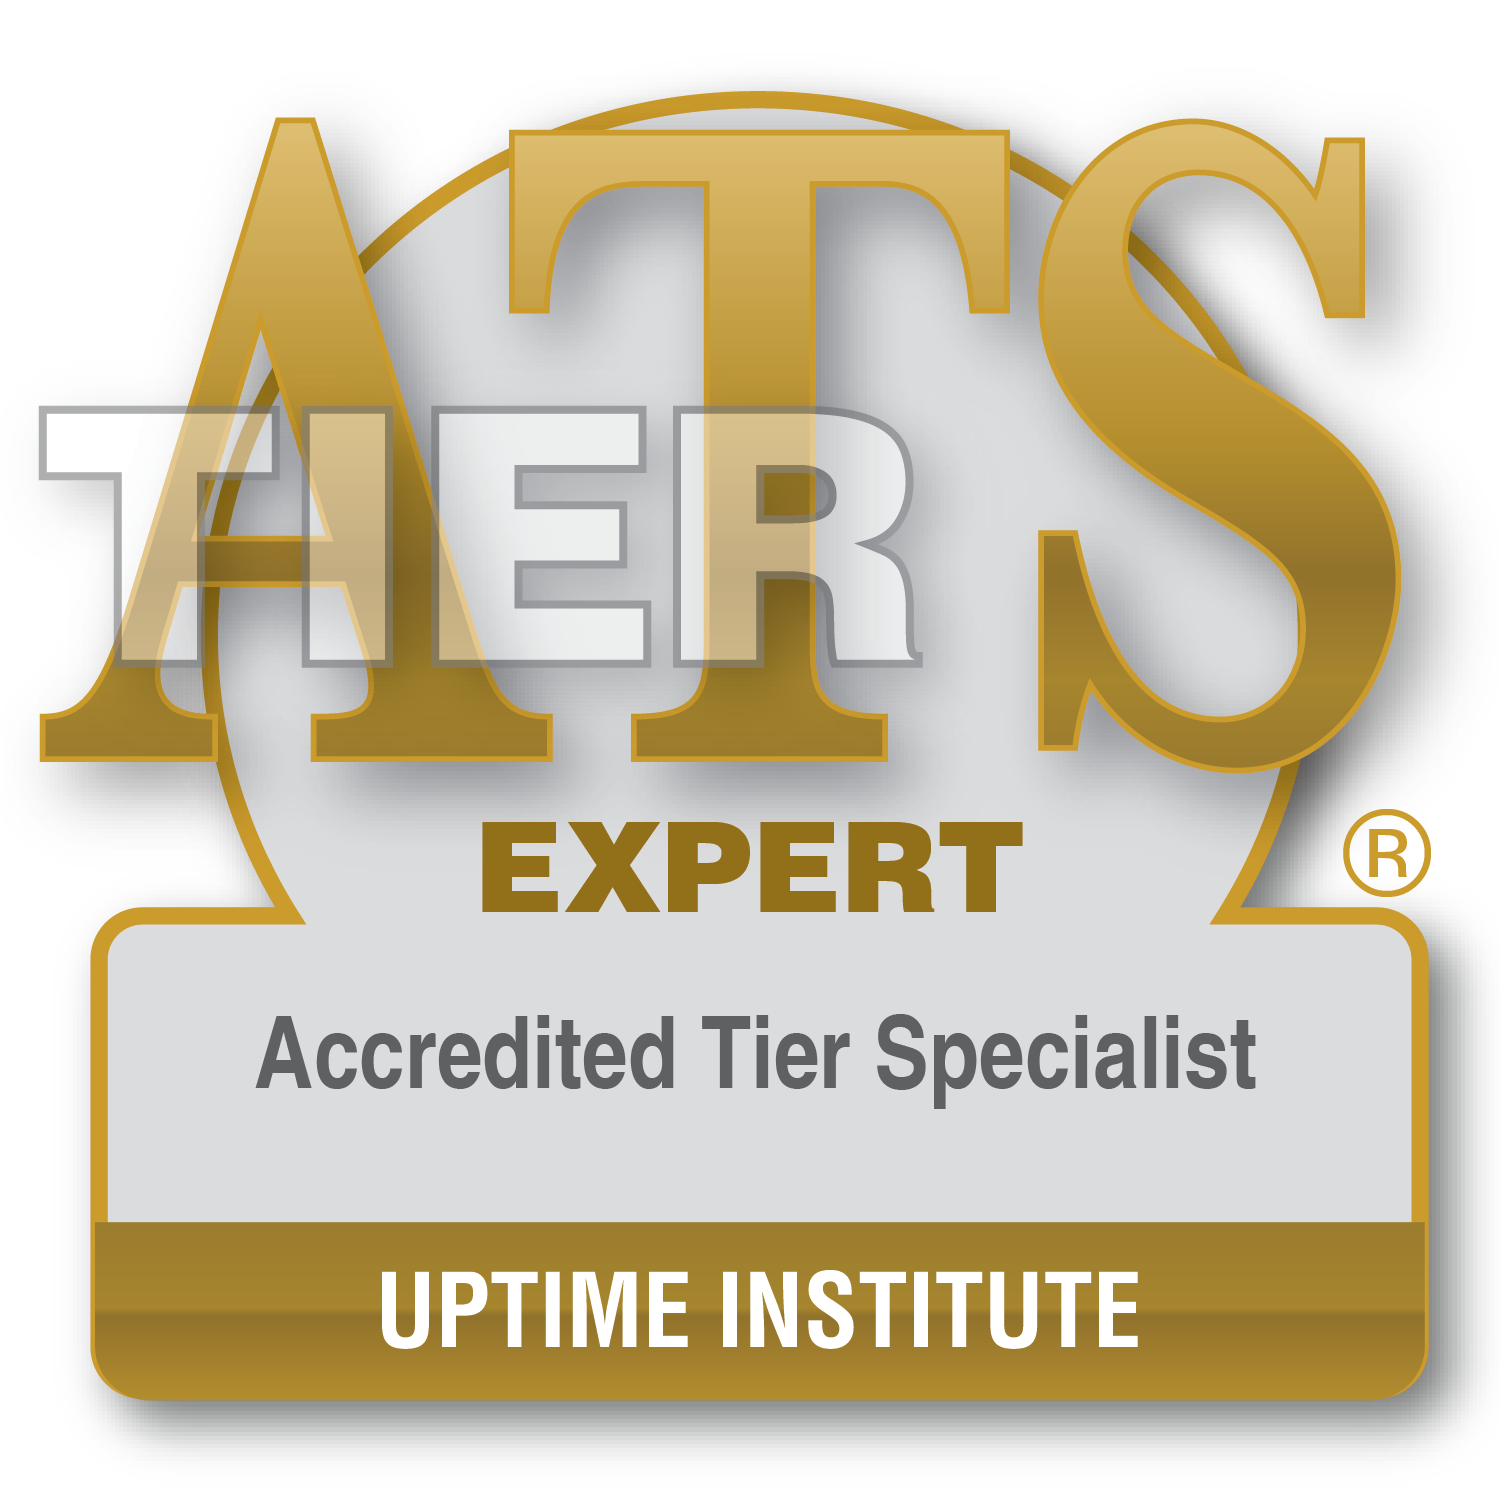 Programa Accredited Tier Specialist - Uptime Institute LLC